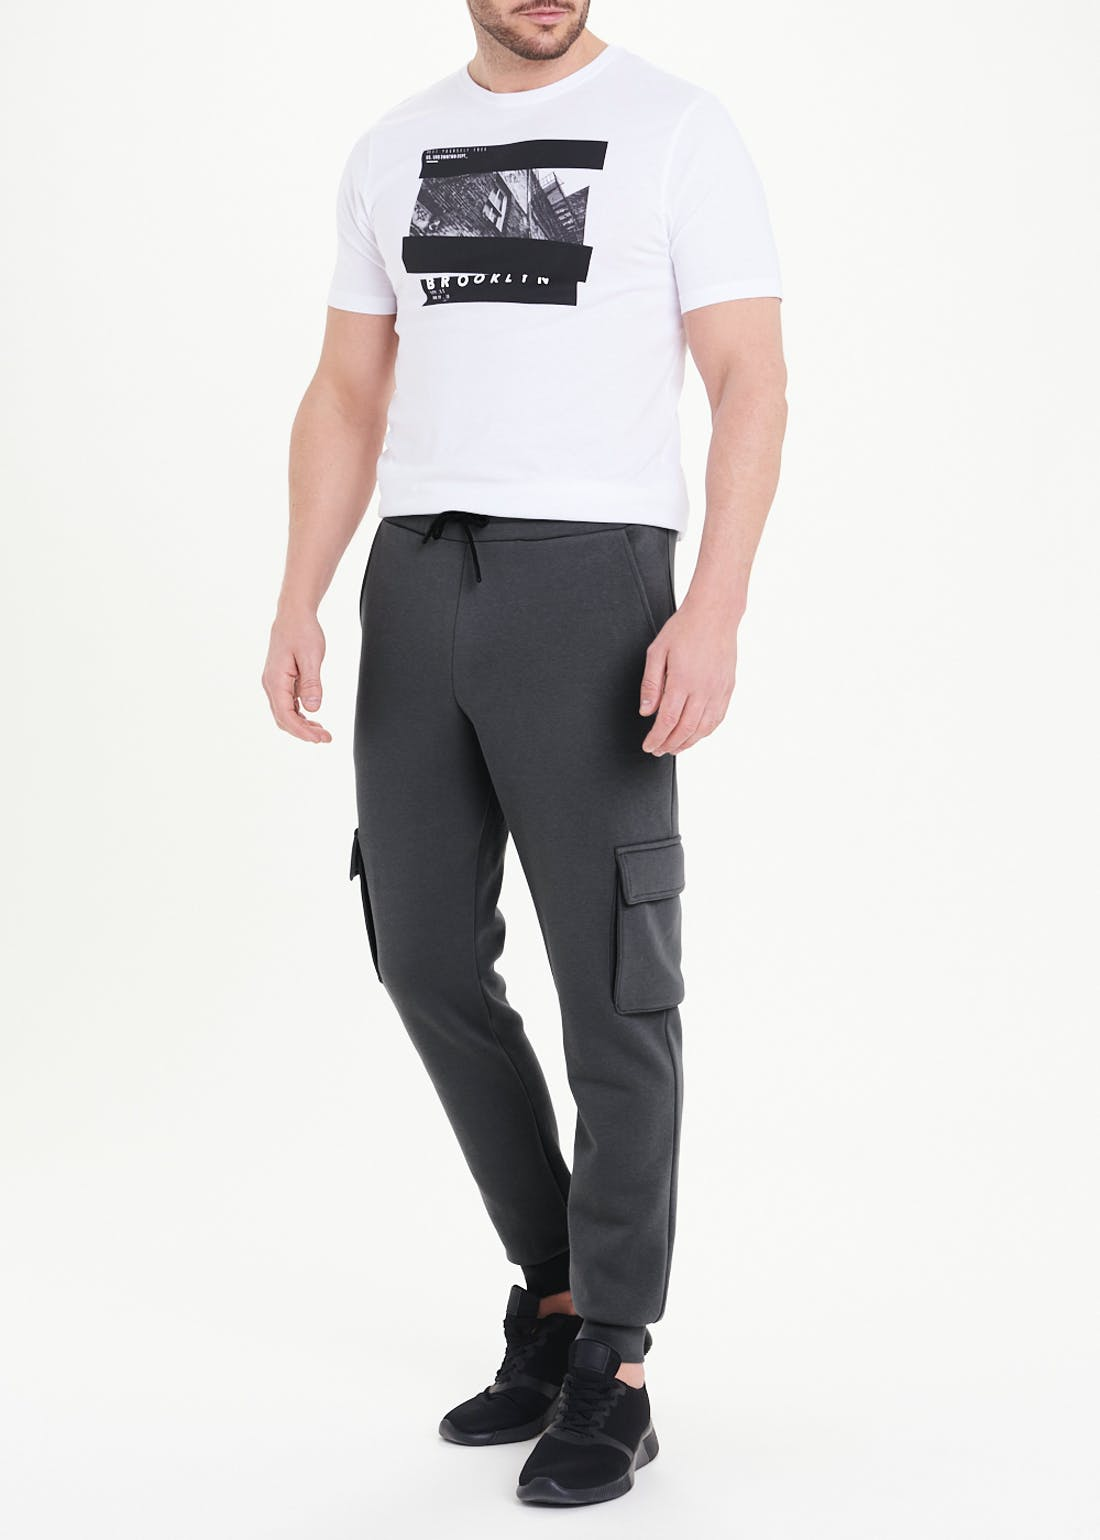 US Athletic Cuffed Cargo Joggers